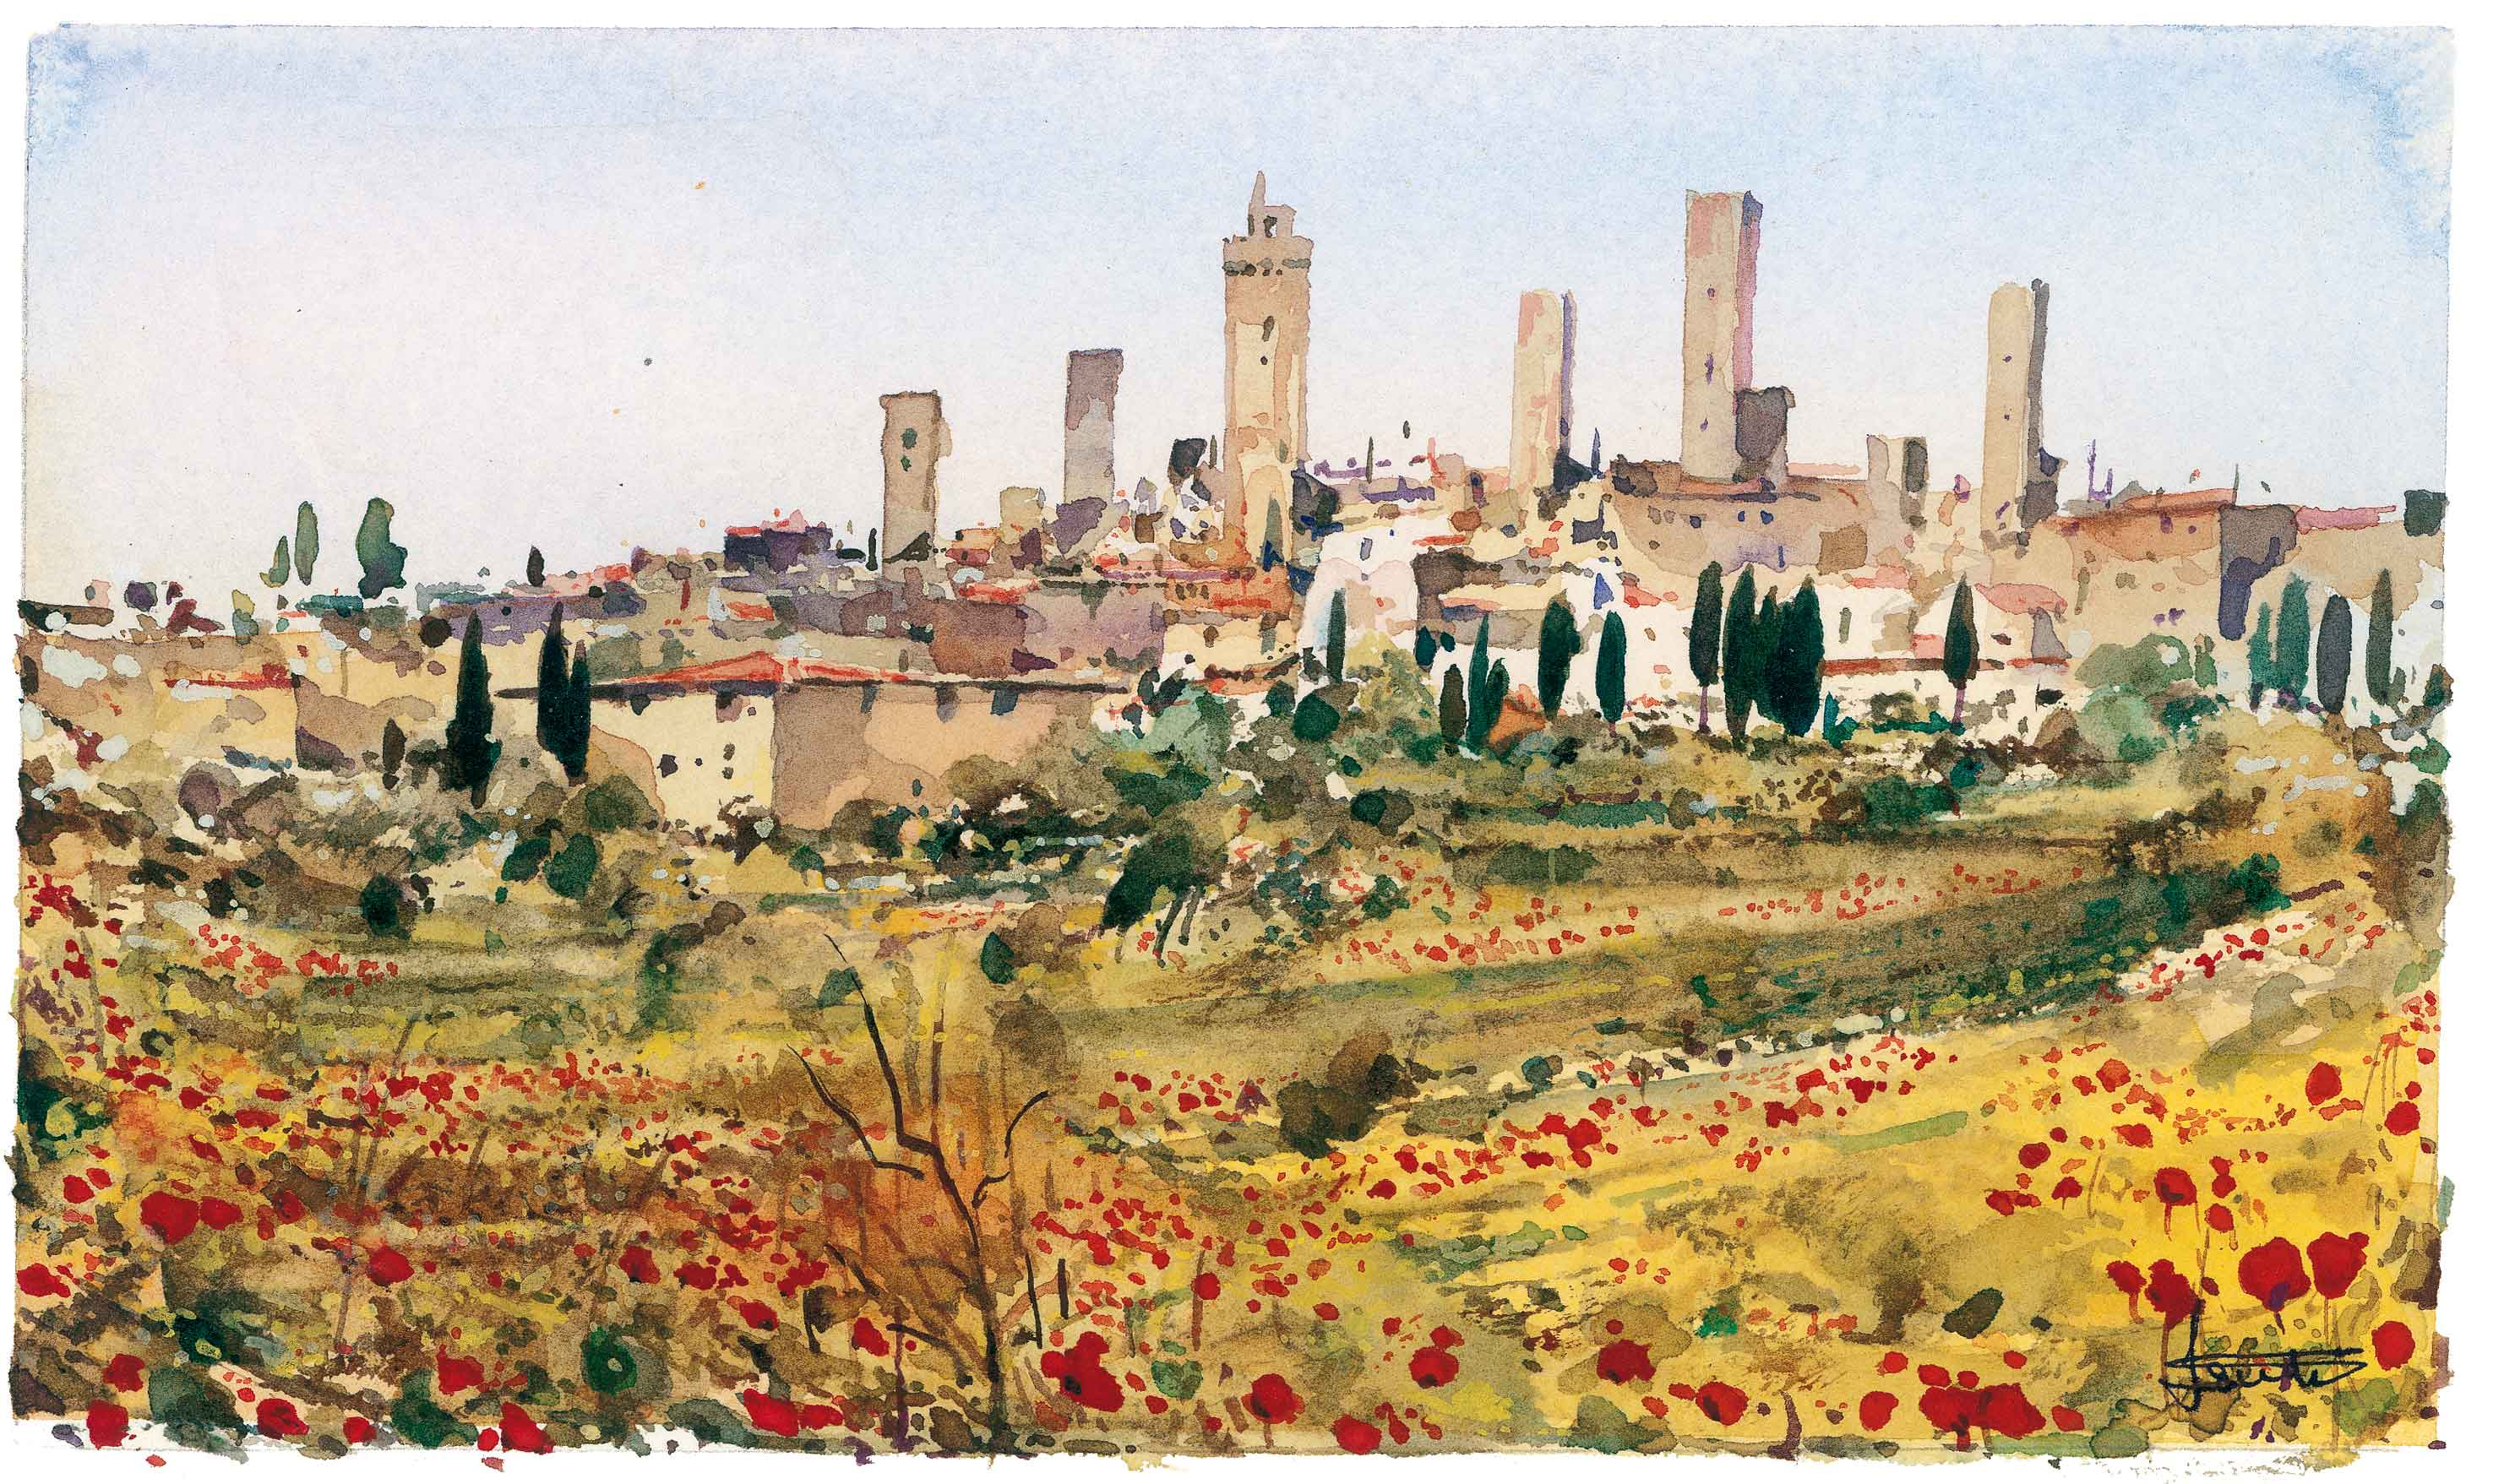 Sangimignano con papaveri - San Gimignano with poppies